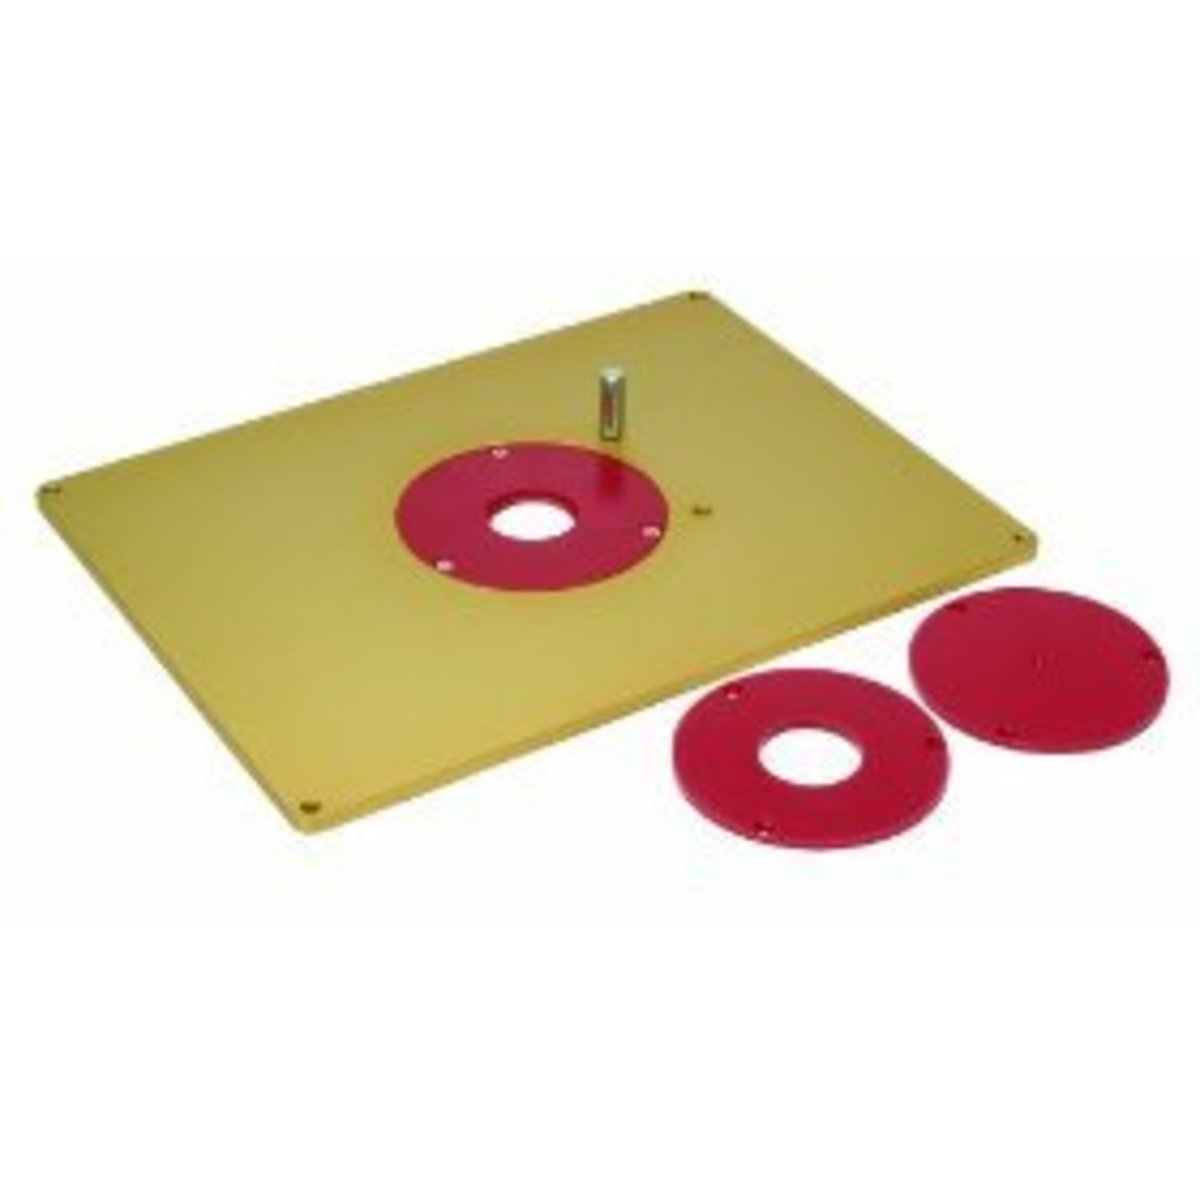 Router table insert plate sizes hubpages aluminum router plate greentooth Images